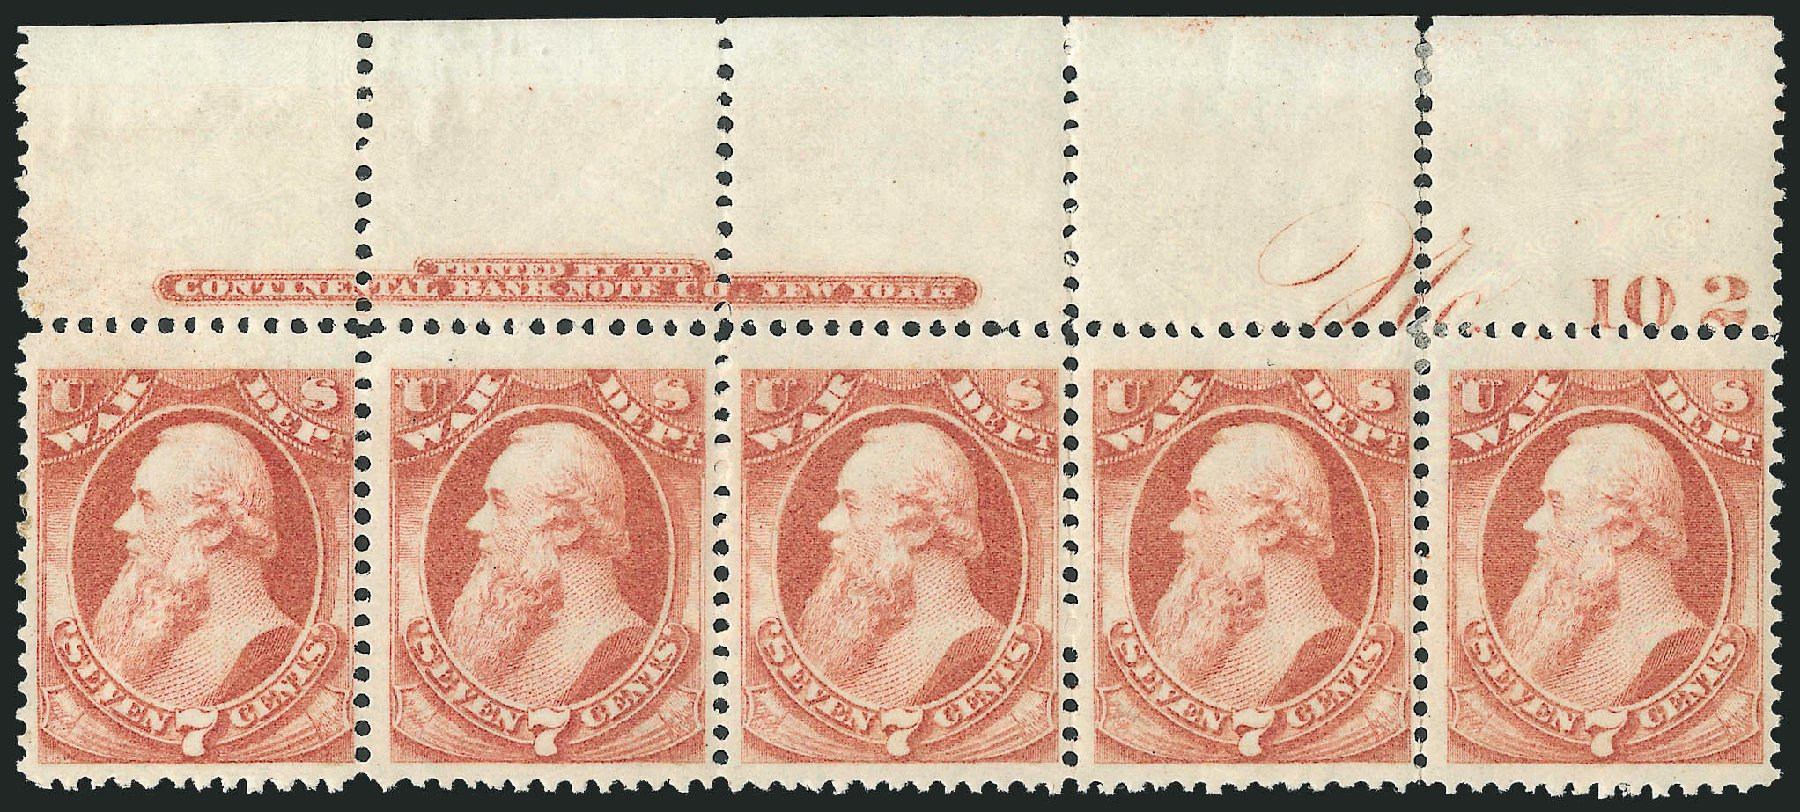 US Stamps Value Scott Catalogue # O87 - 1873 7c War Official. Robert Siegel Auction Galleries, Dec 2010, Sale 1003, Lot 5466